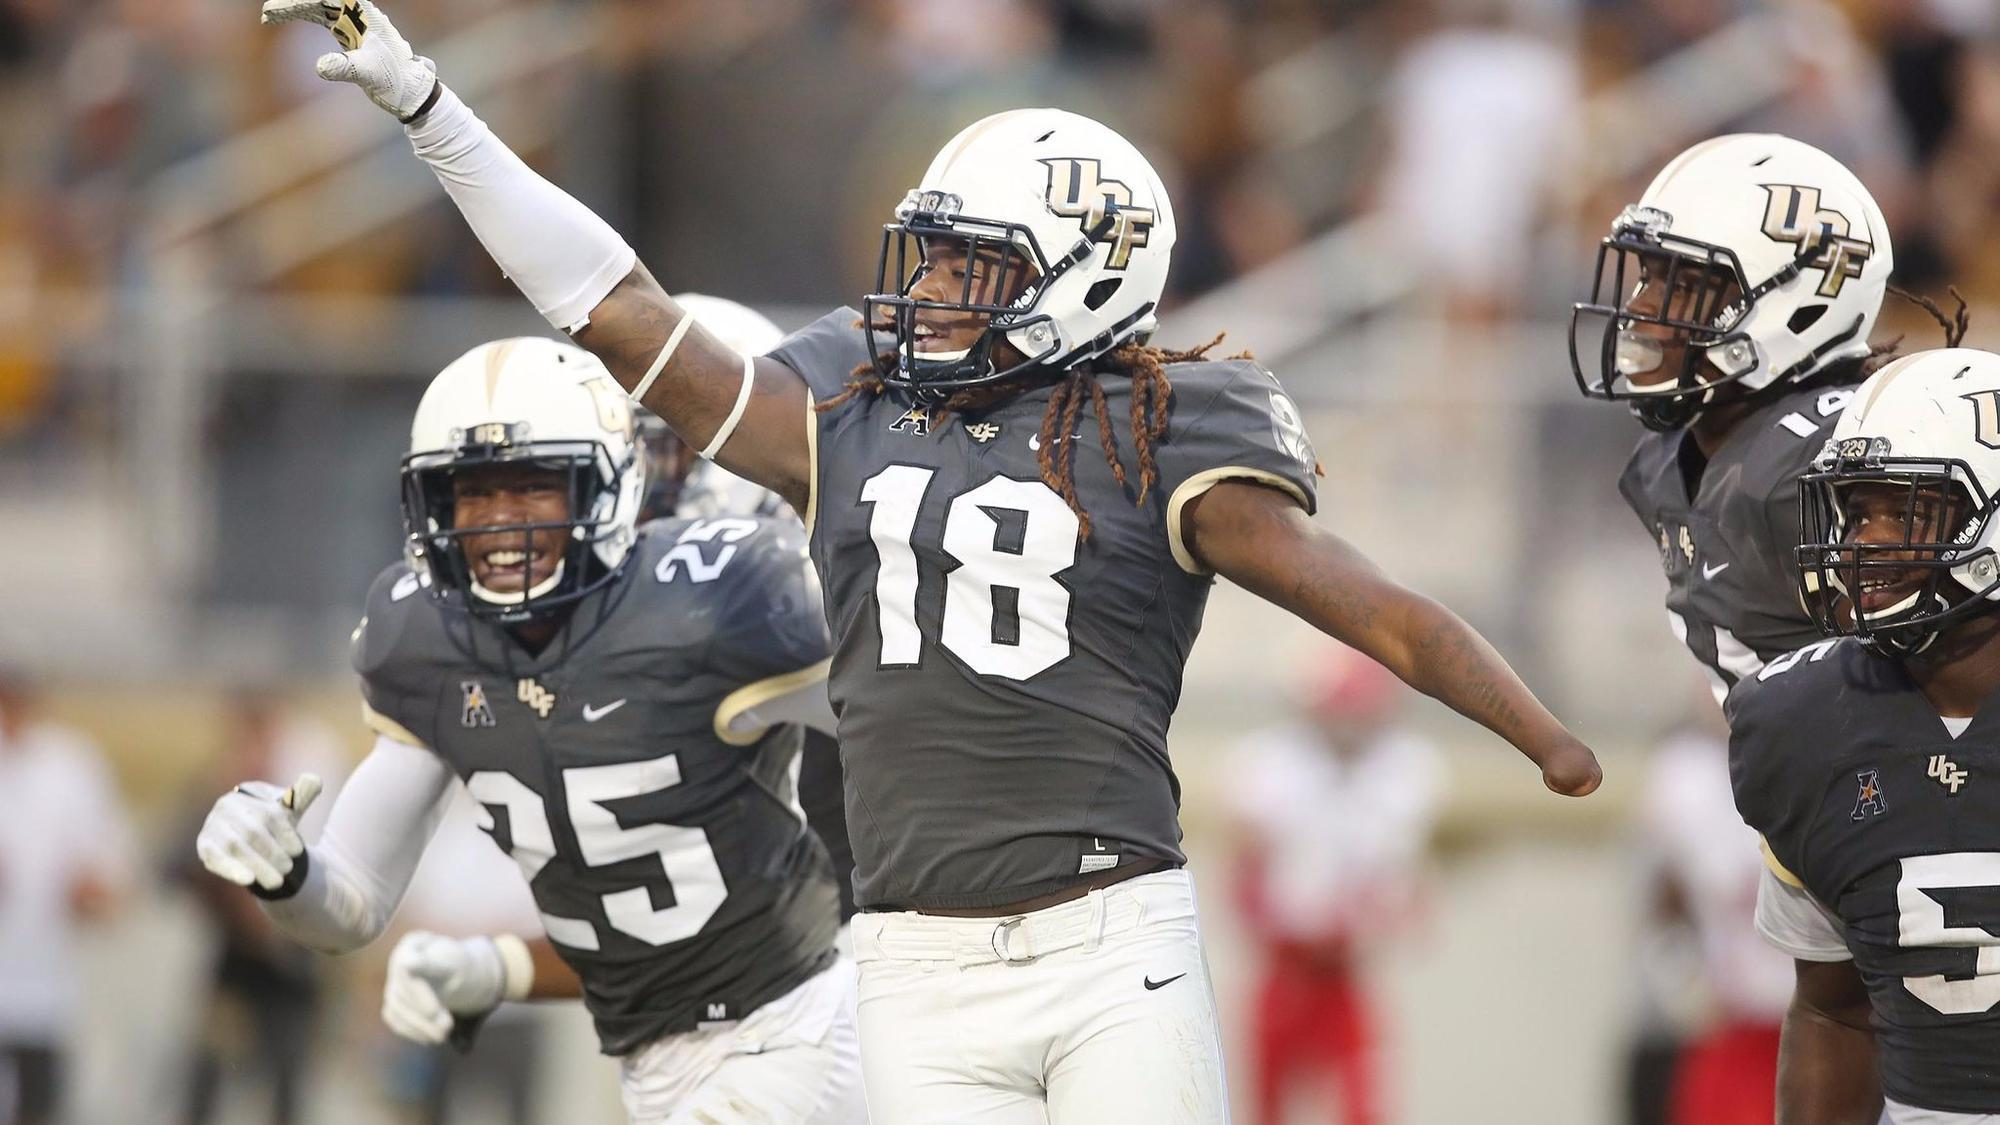 Ucf Sets Scoring Record During 73 33 Rout Of Austin Peay Orlando